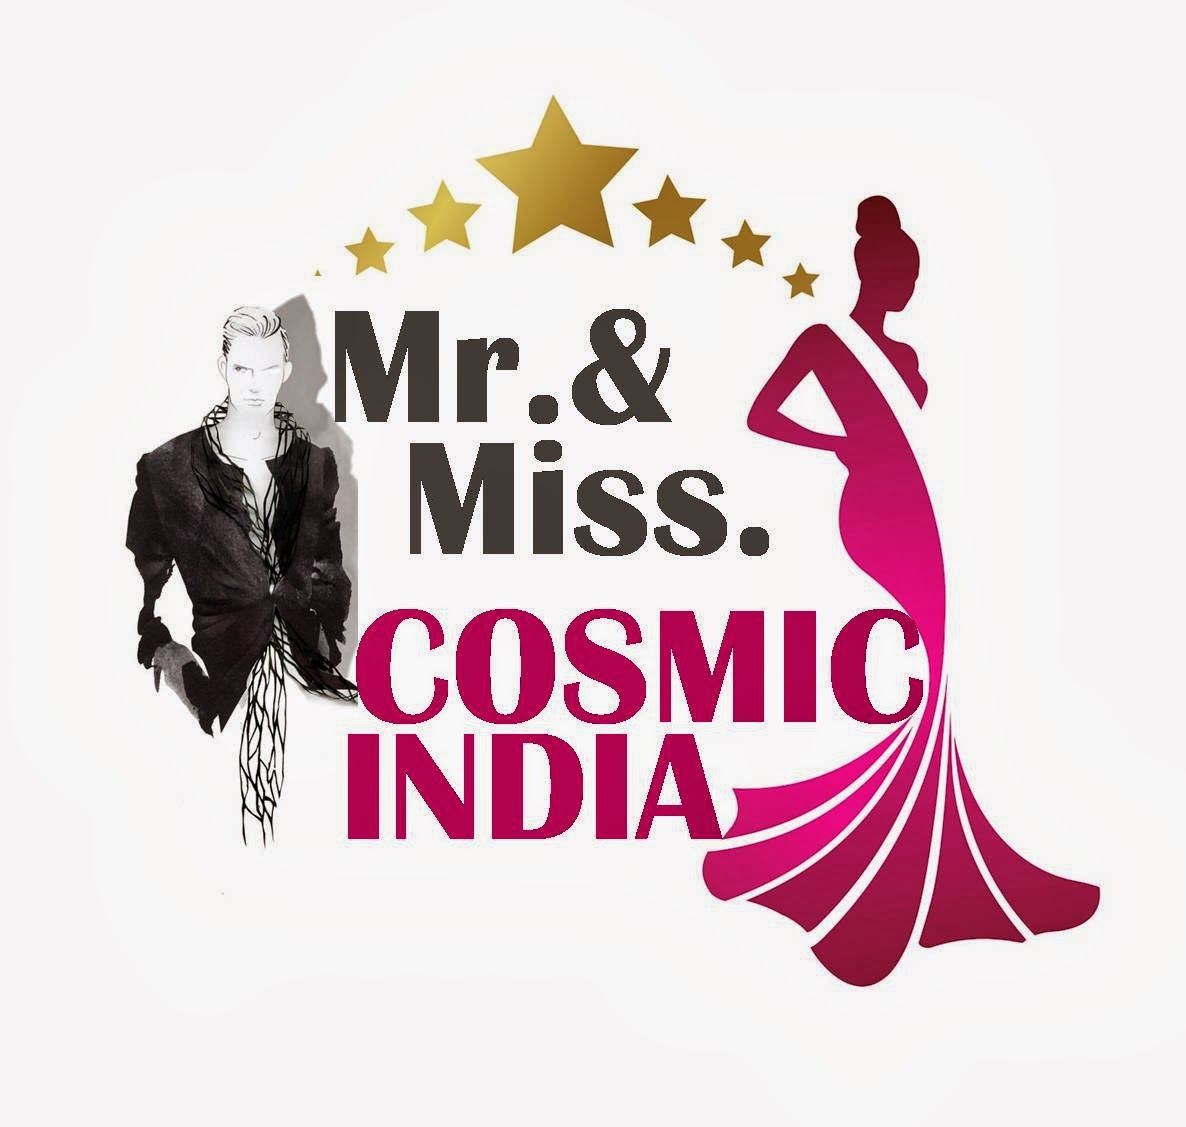 mr & Miss Cosmic India